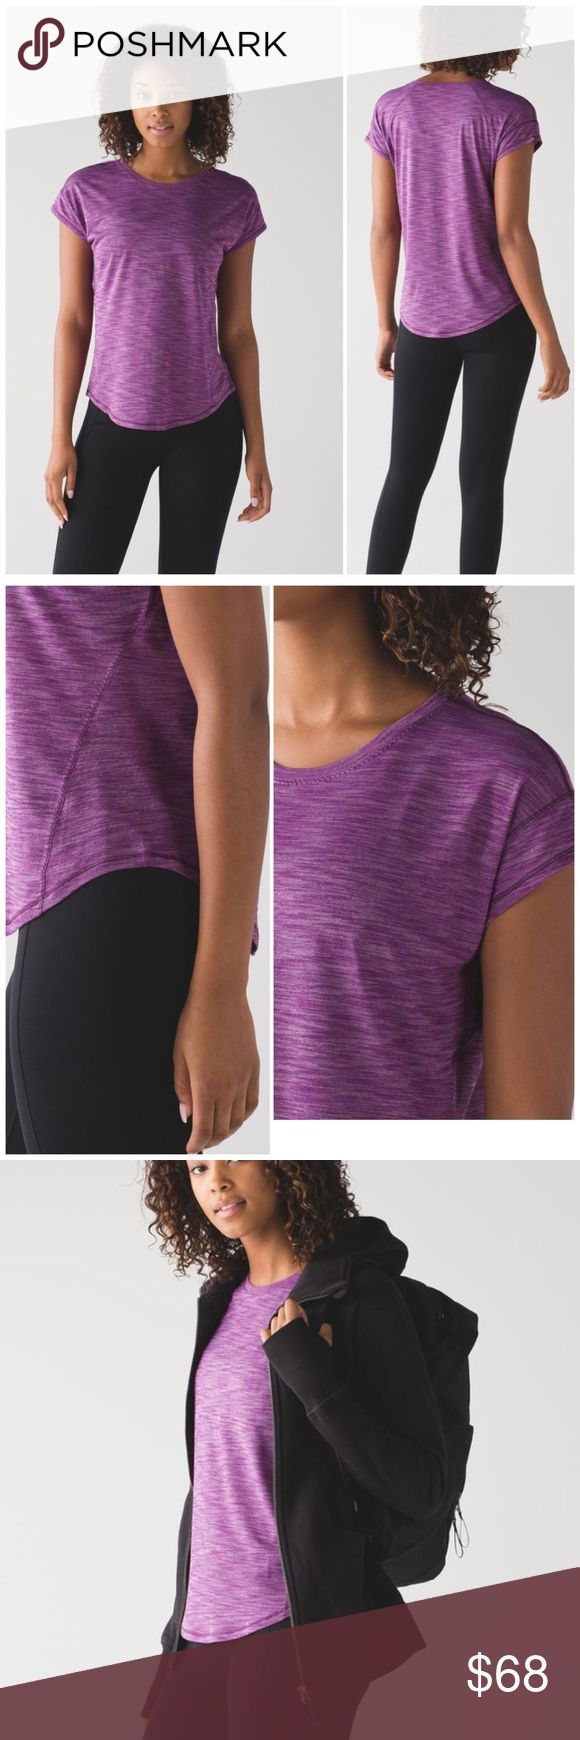 NWT Lululemon Tee From high-intensity sweat dates to coffee shop stops, this lightweight, versatile tee has you covered. Seriously Light™ Luon Our sweat-wicking, four-way stretch Seriously Light™ Luon fabric makes moving a breeze seriously lightweight sweat-wicking four-way stretch cottony-soft lululemon athletica Tops Tees - Short Sleeve